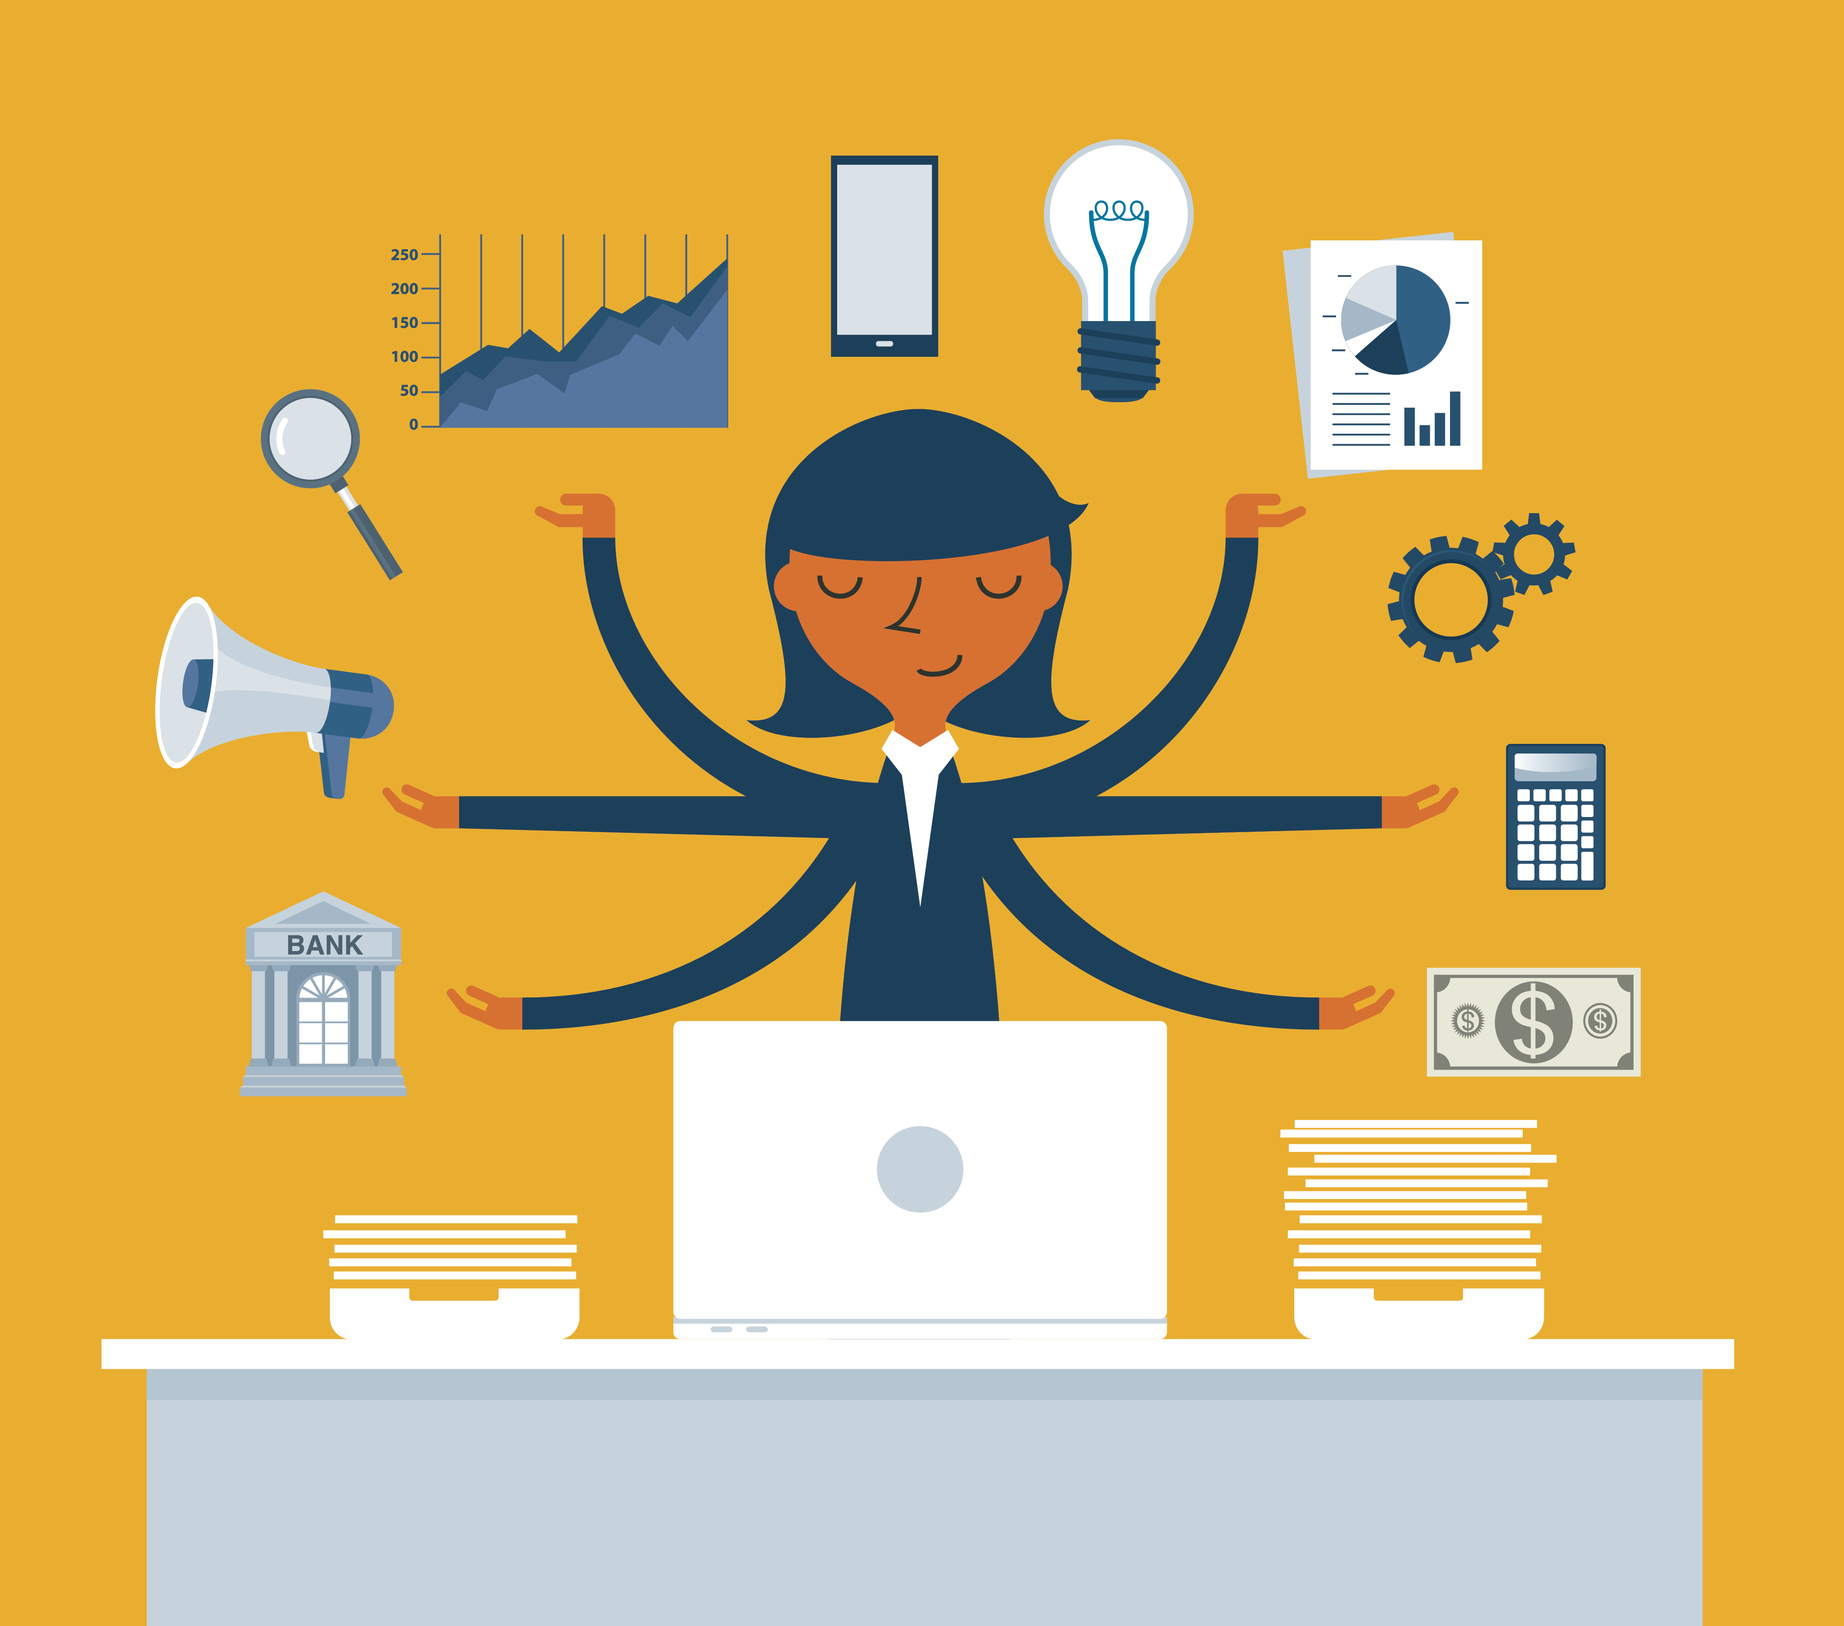 Cartoon of a woman at her desk juggling multiple tasks simultaneously